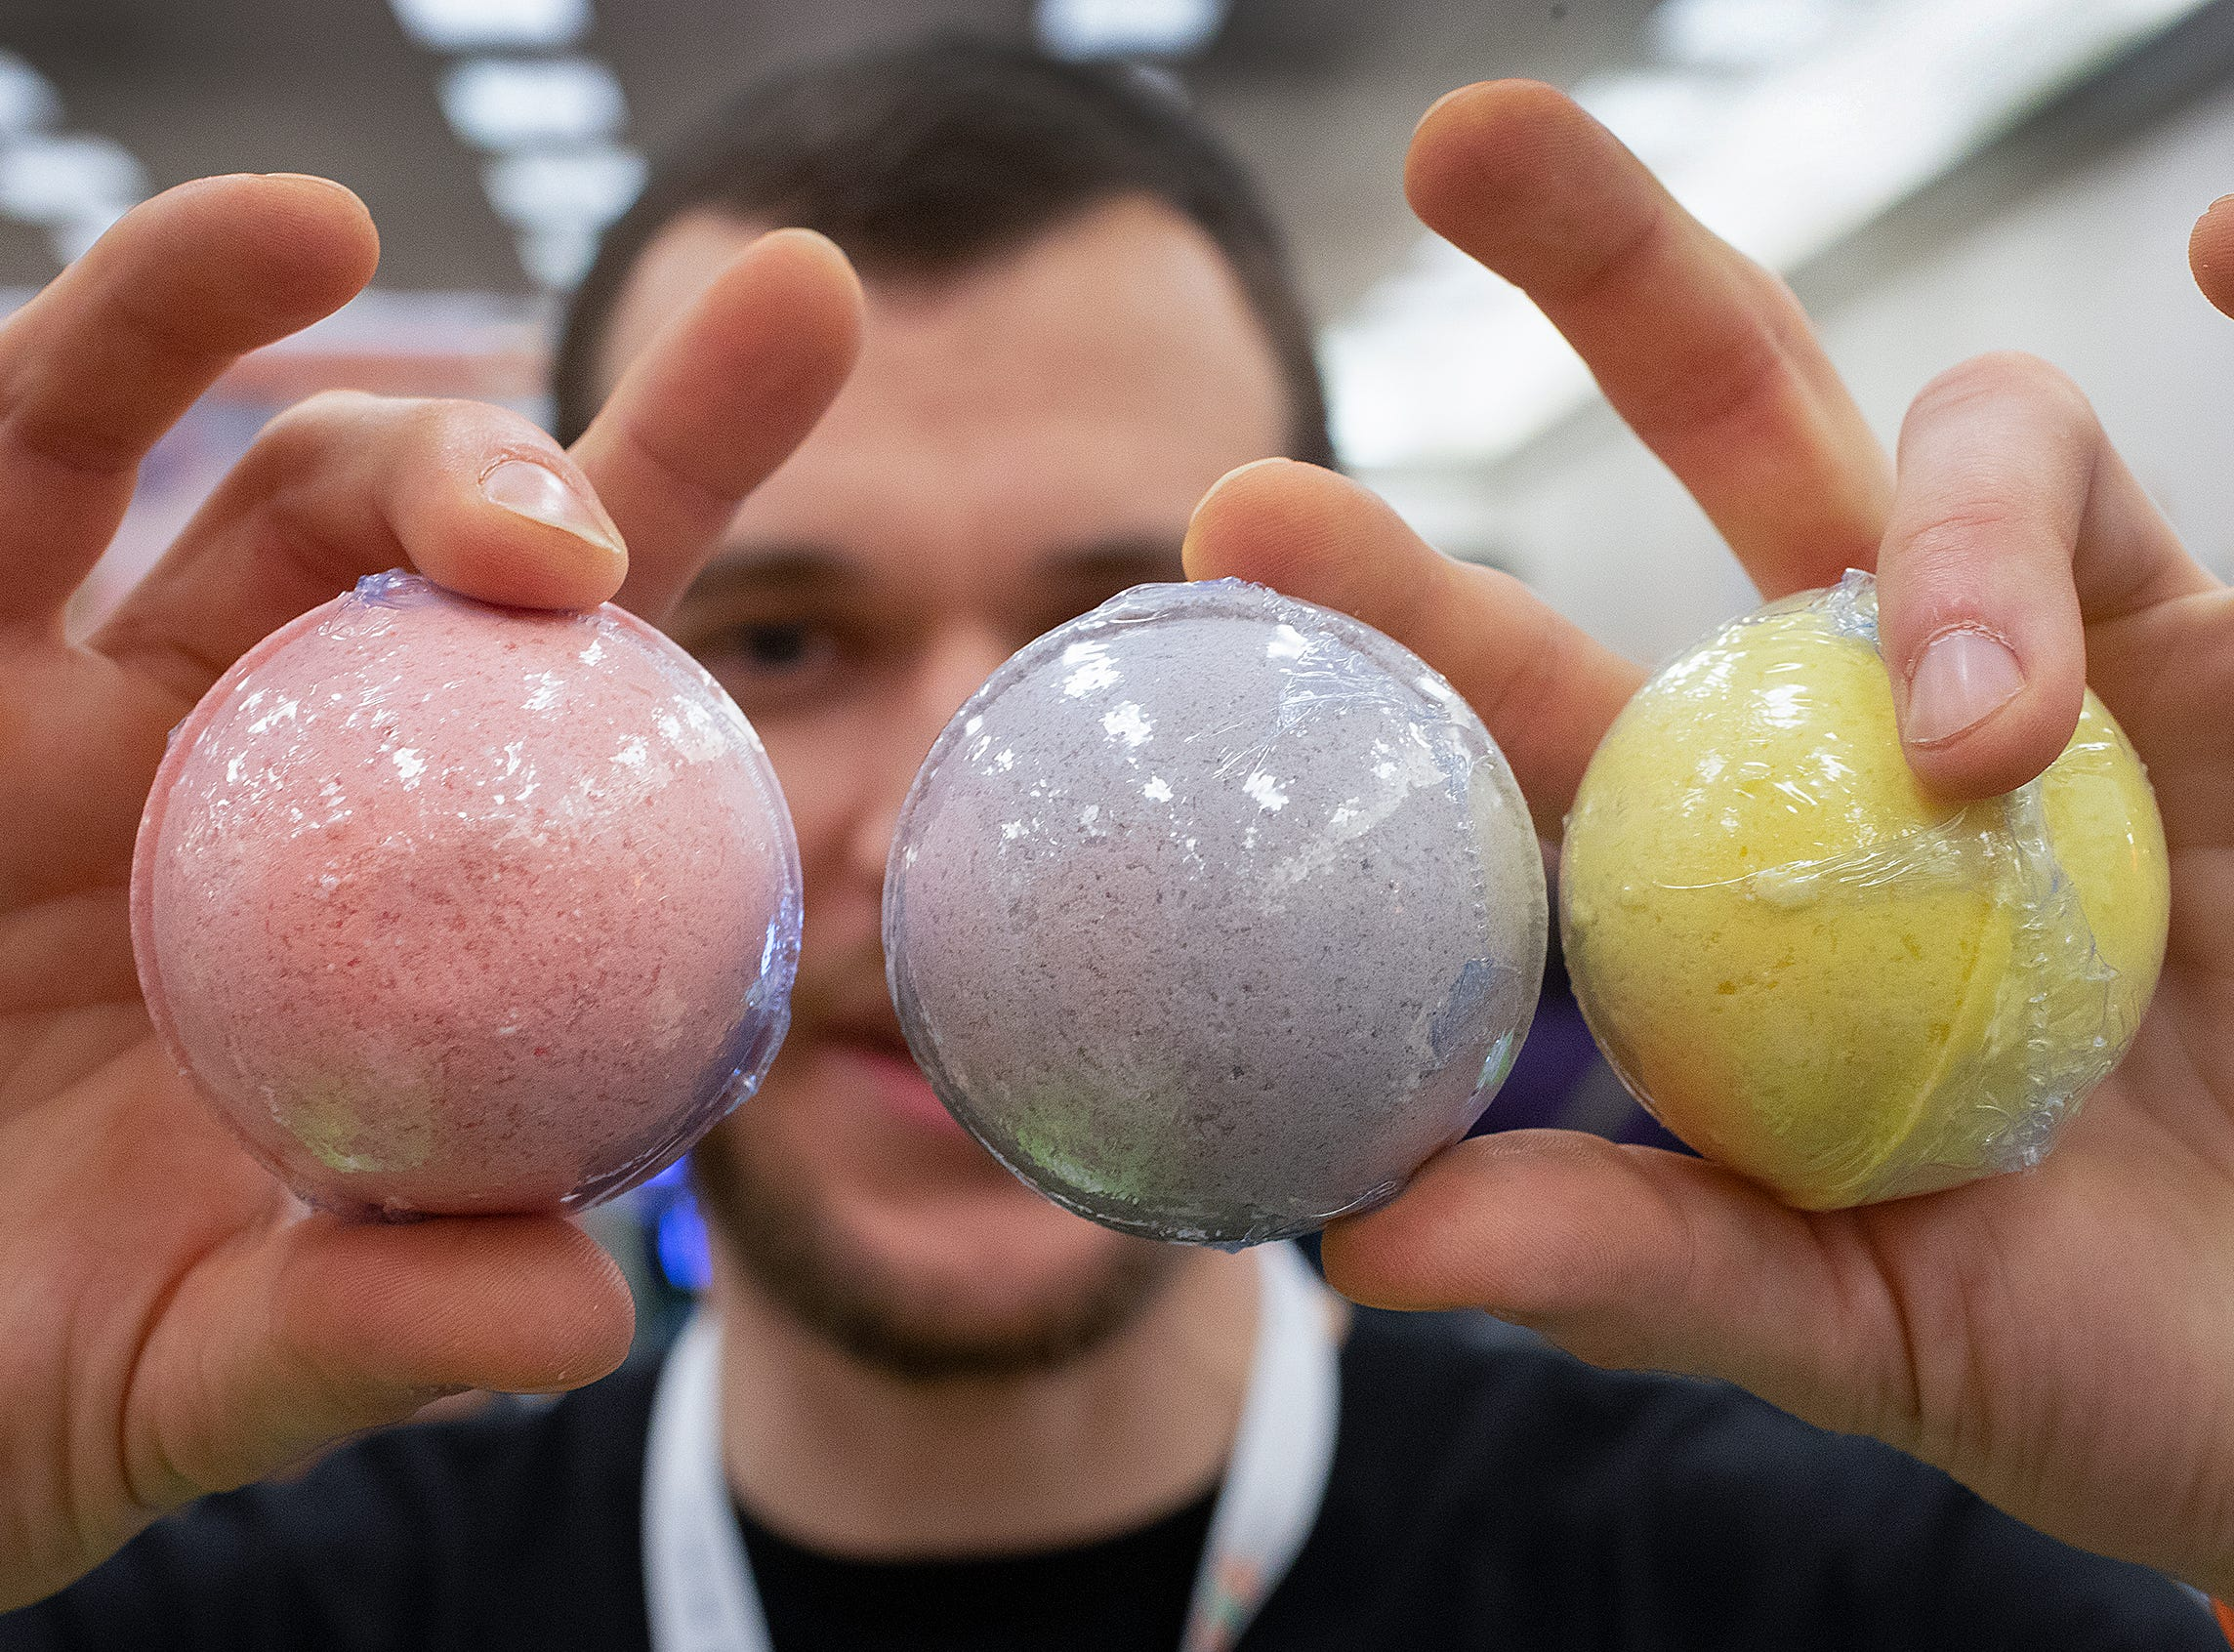 Michael Walker from Ultra CBD hold his company's bathbombs that come in three scents vanilla lavender, lemon grapefruit and pepperming menthol at the CBD Expo at the Marriott East in Indianapolis on Friday, Mar. 15, 2019.